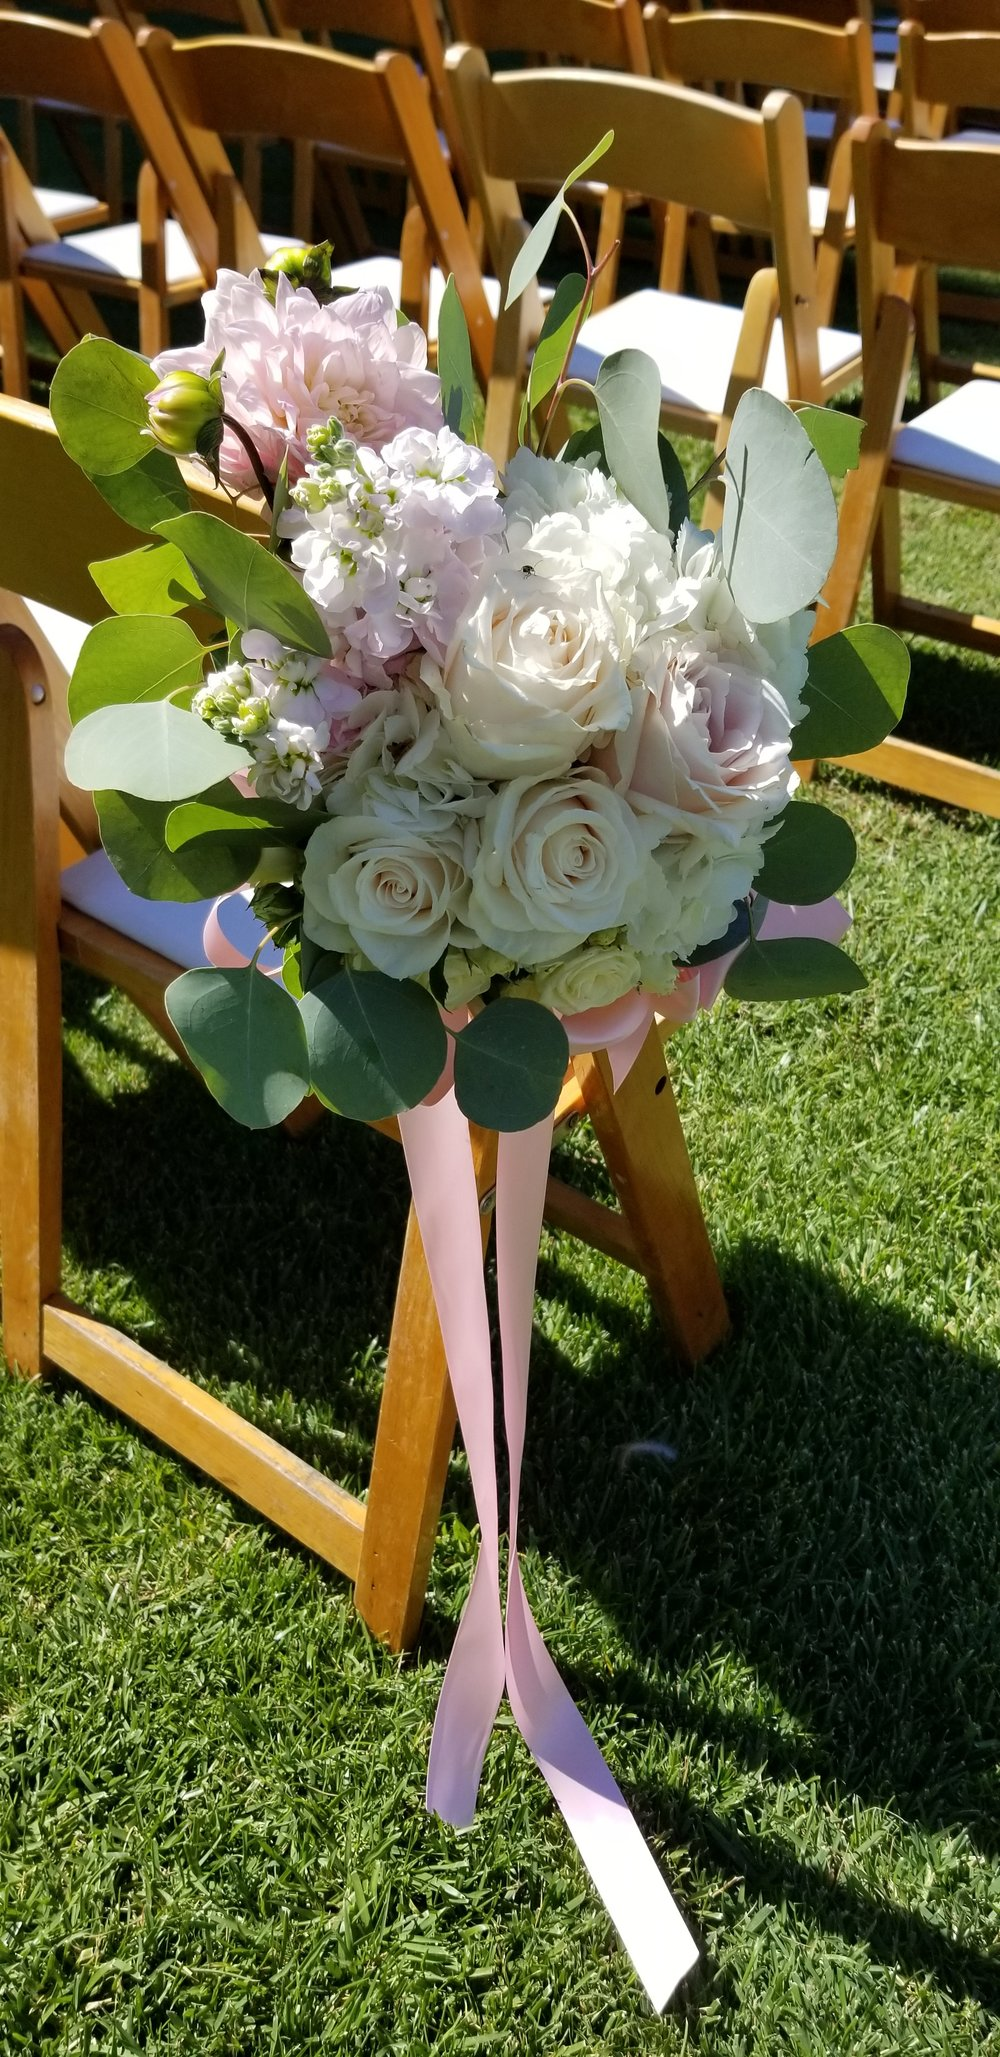 Wedding aisle bouquet in blush and white with draping greens, tied to aisle chairs with flowing ribbon.